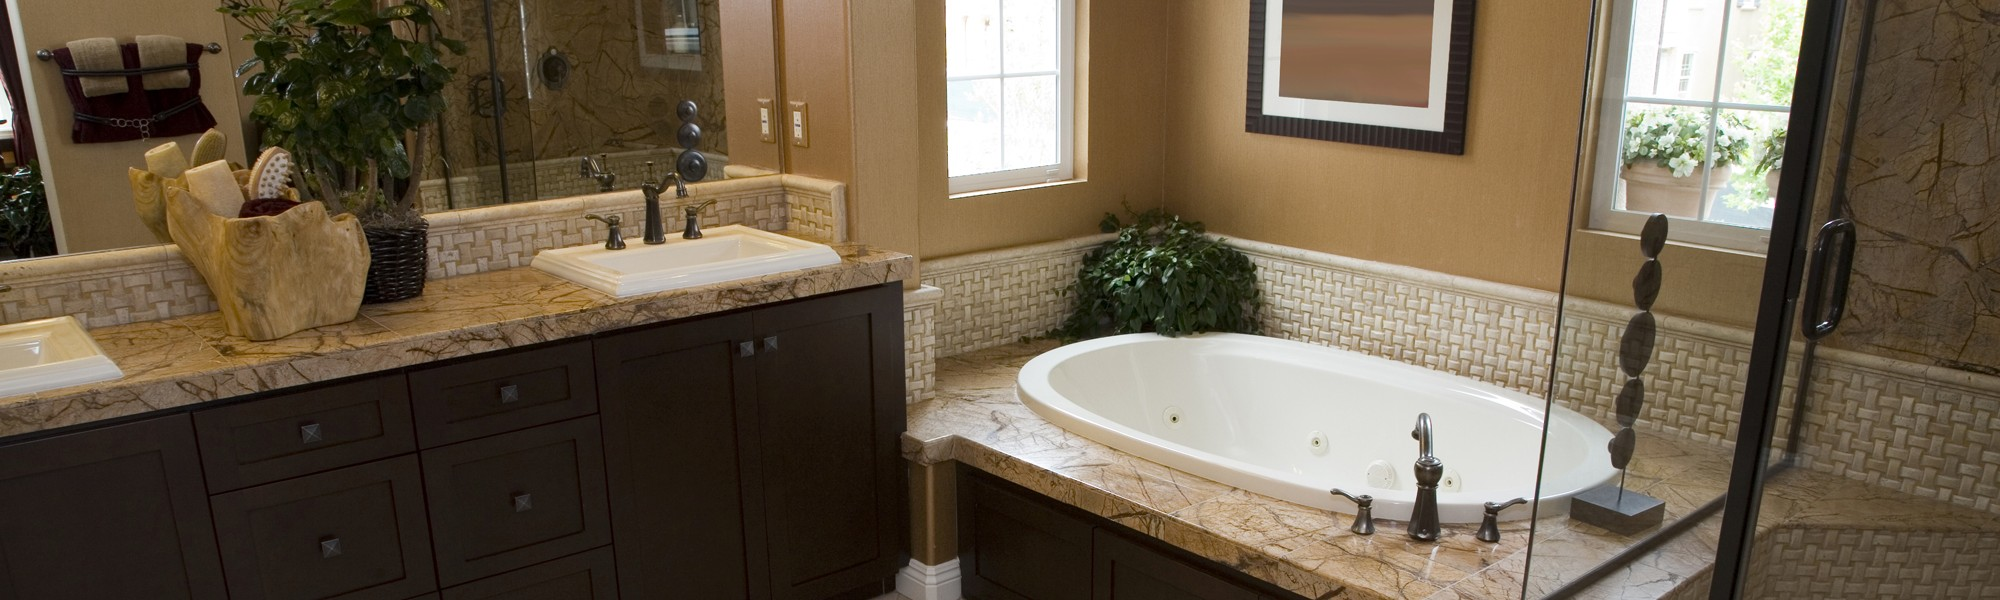 Commercial Bathroom Refinishing Waterbury CT - Bathroom remodeling waterbury ct